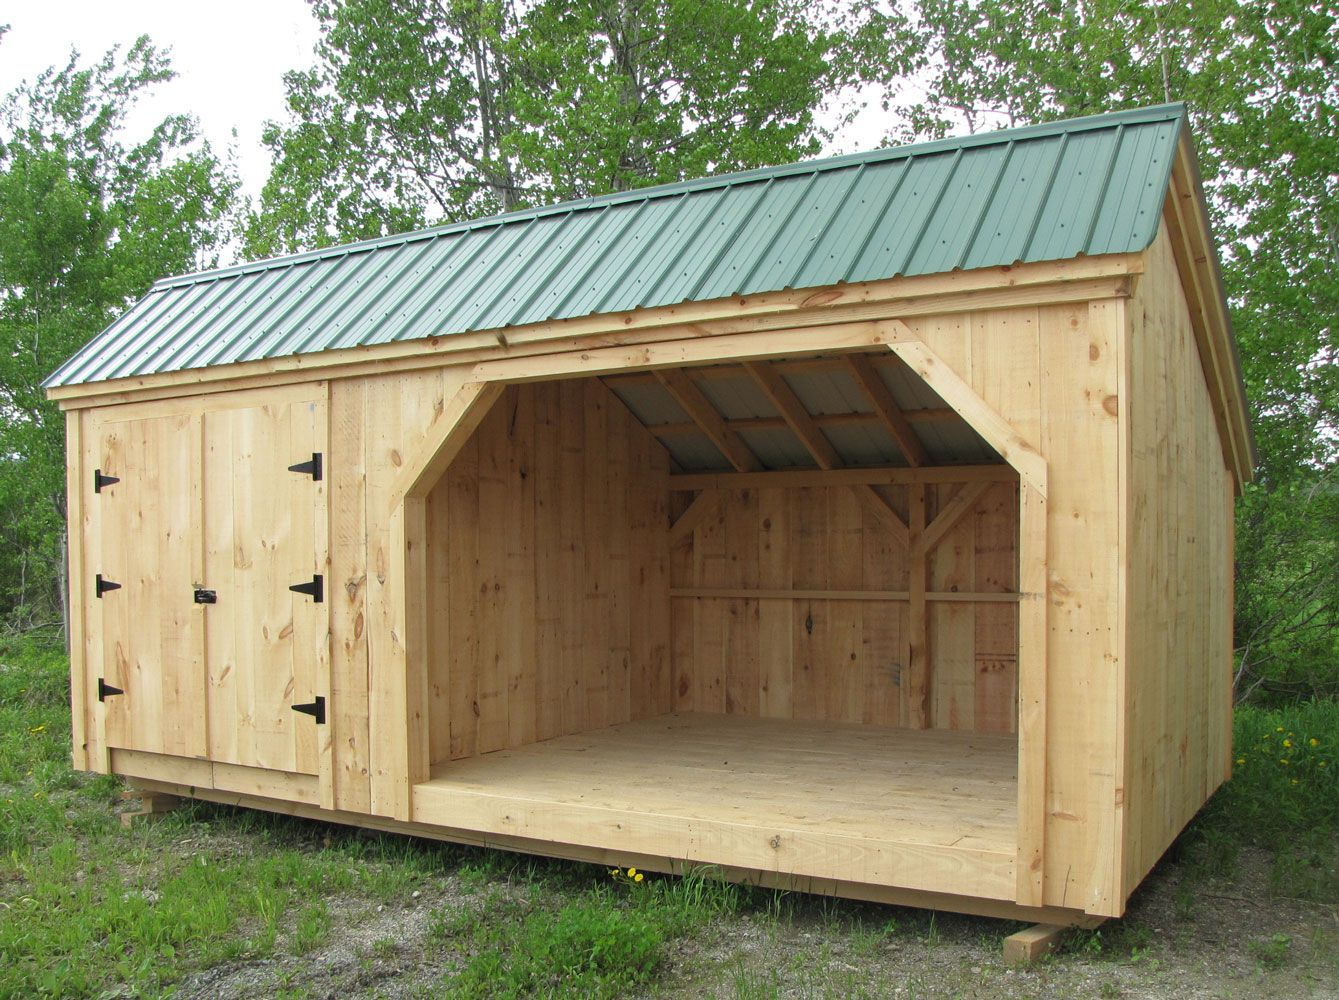 Best Soft Orange Wood Wall And Green Roof Color For Firewood 400 x 300